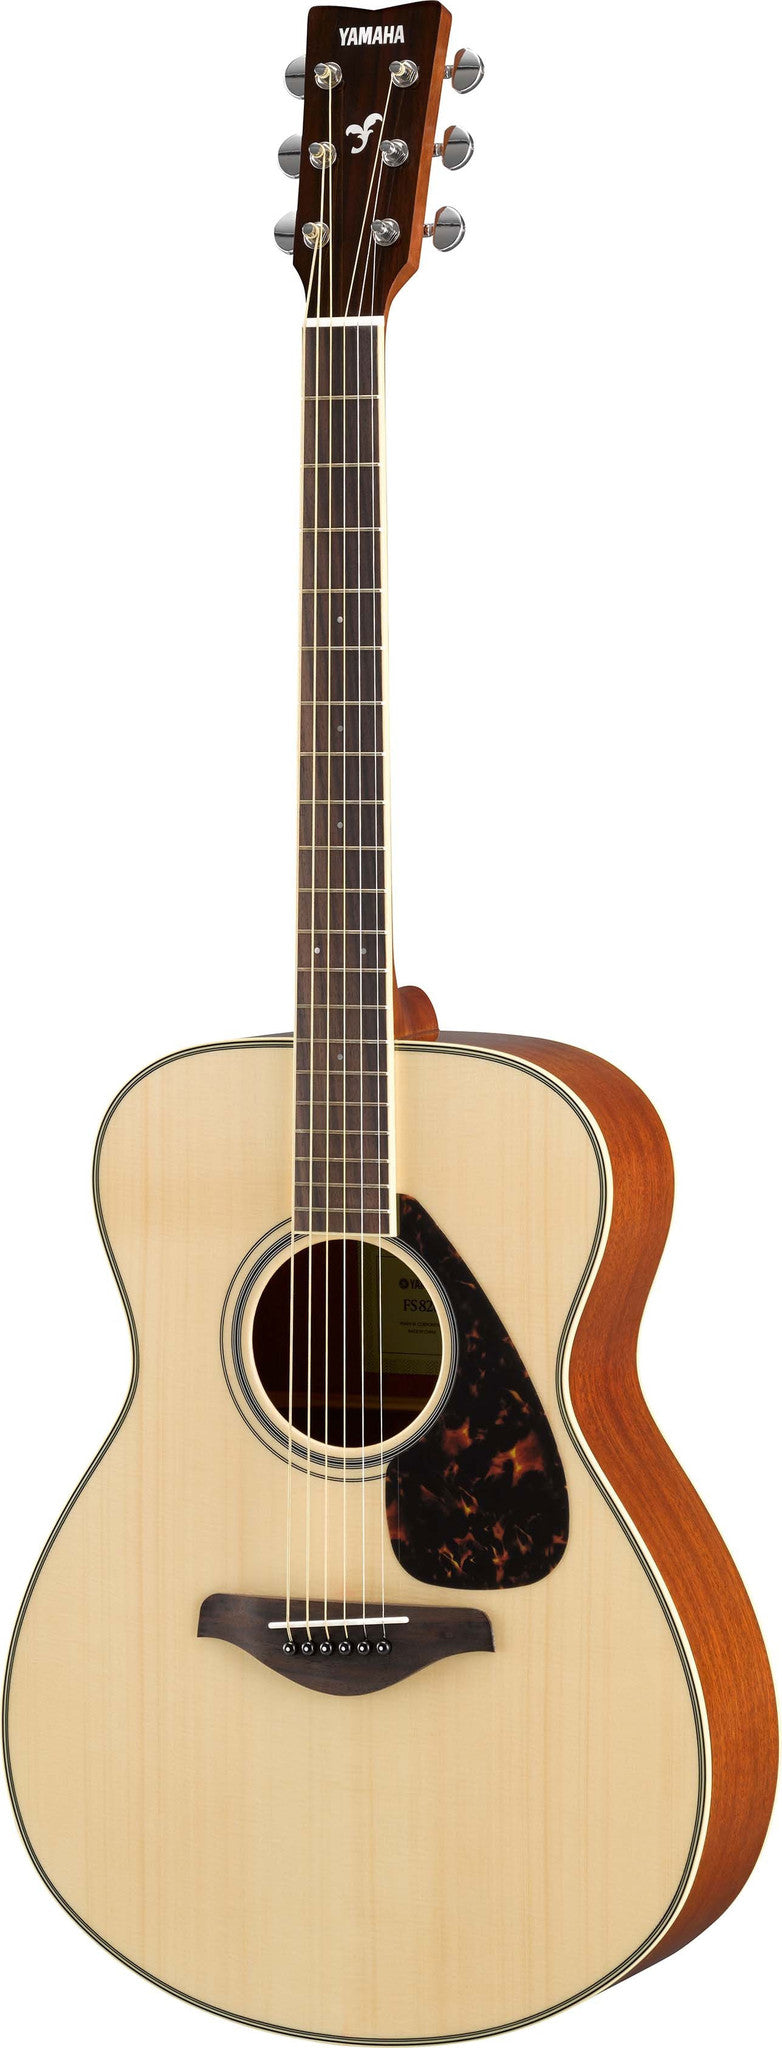 Yamaha FS820 Small Body Acoustic Guitar Bundle